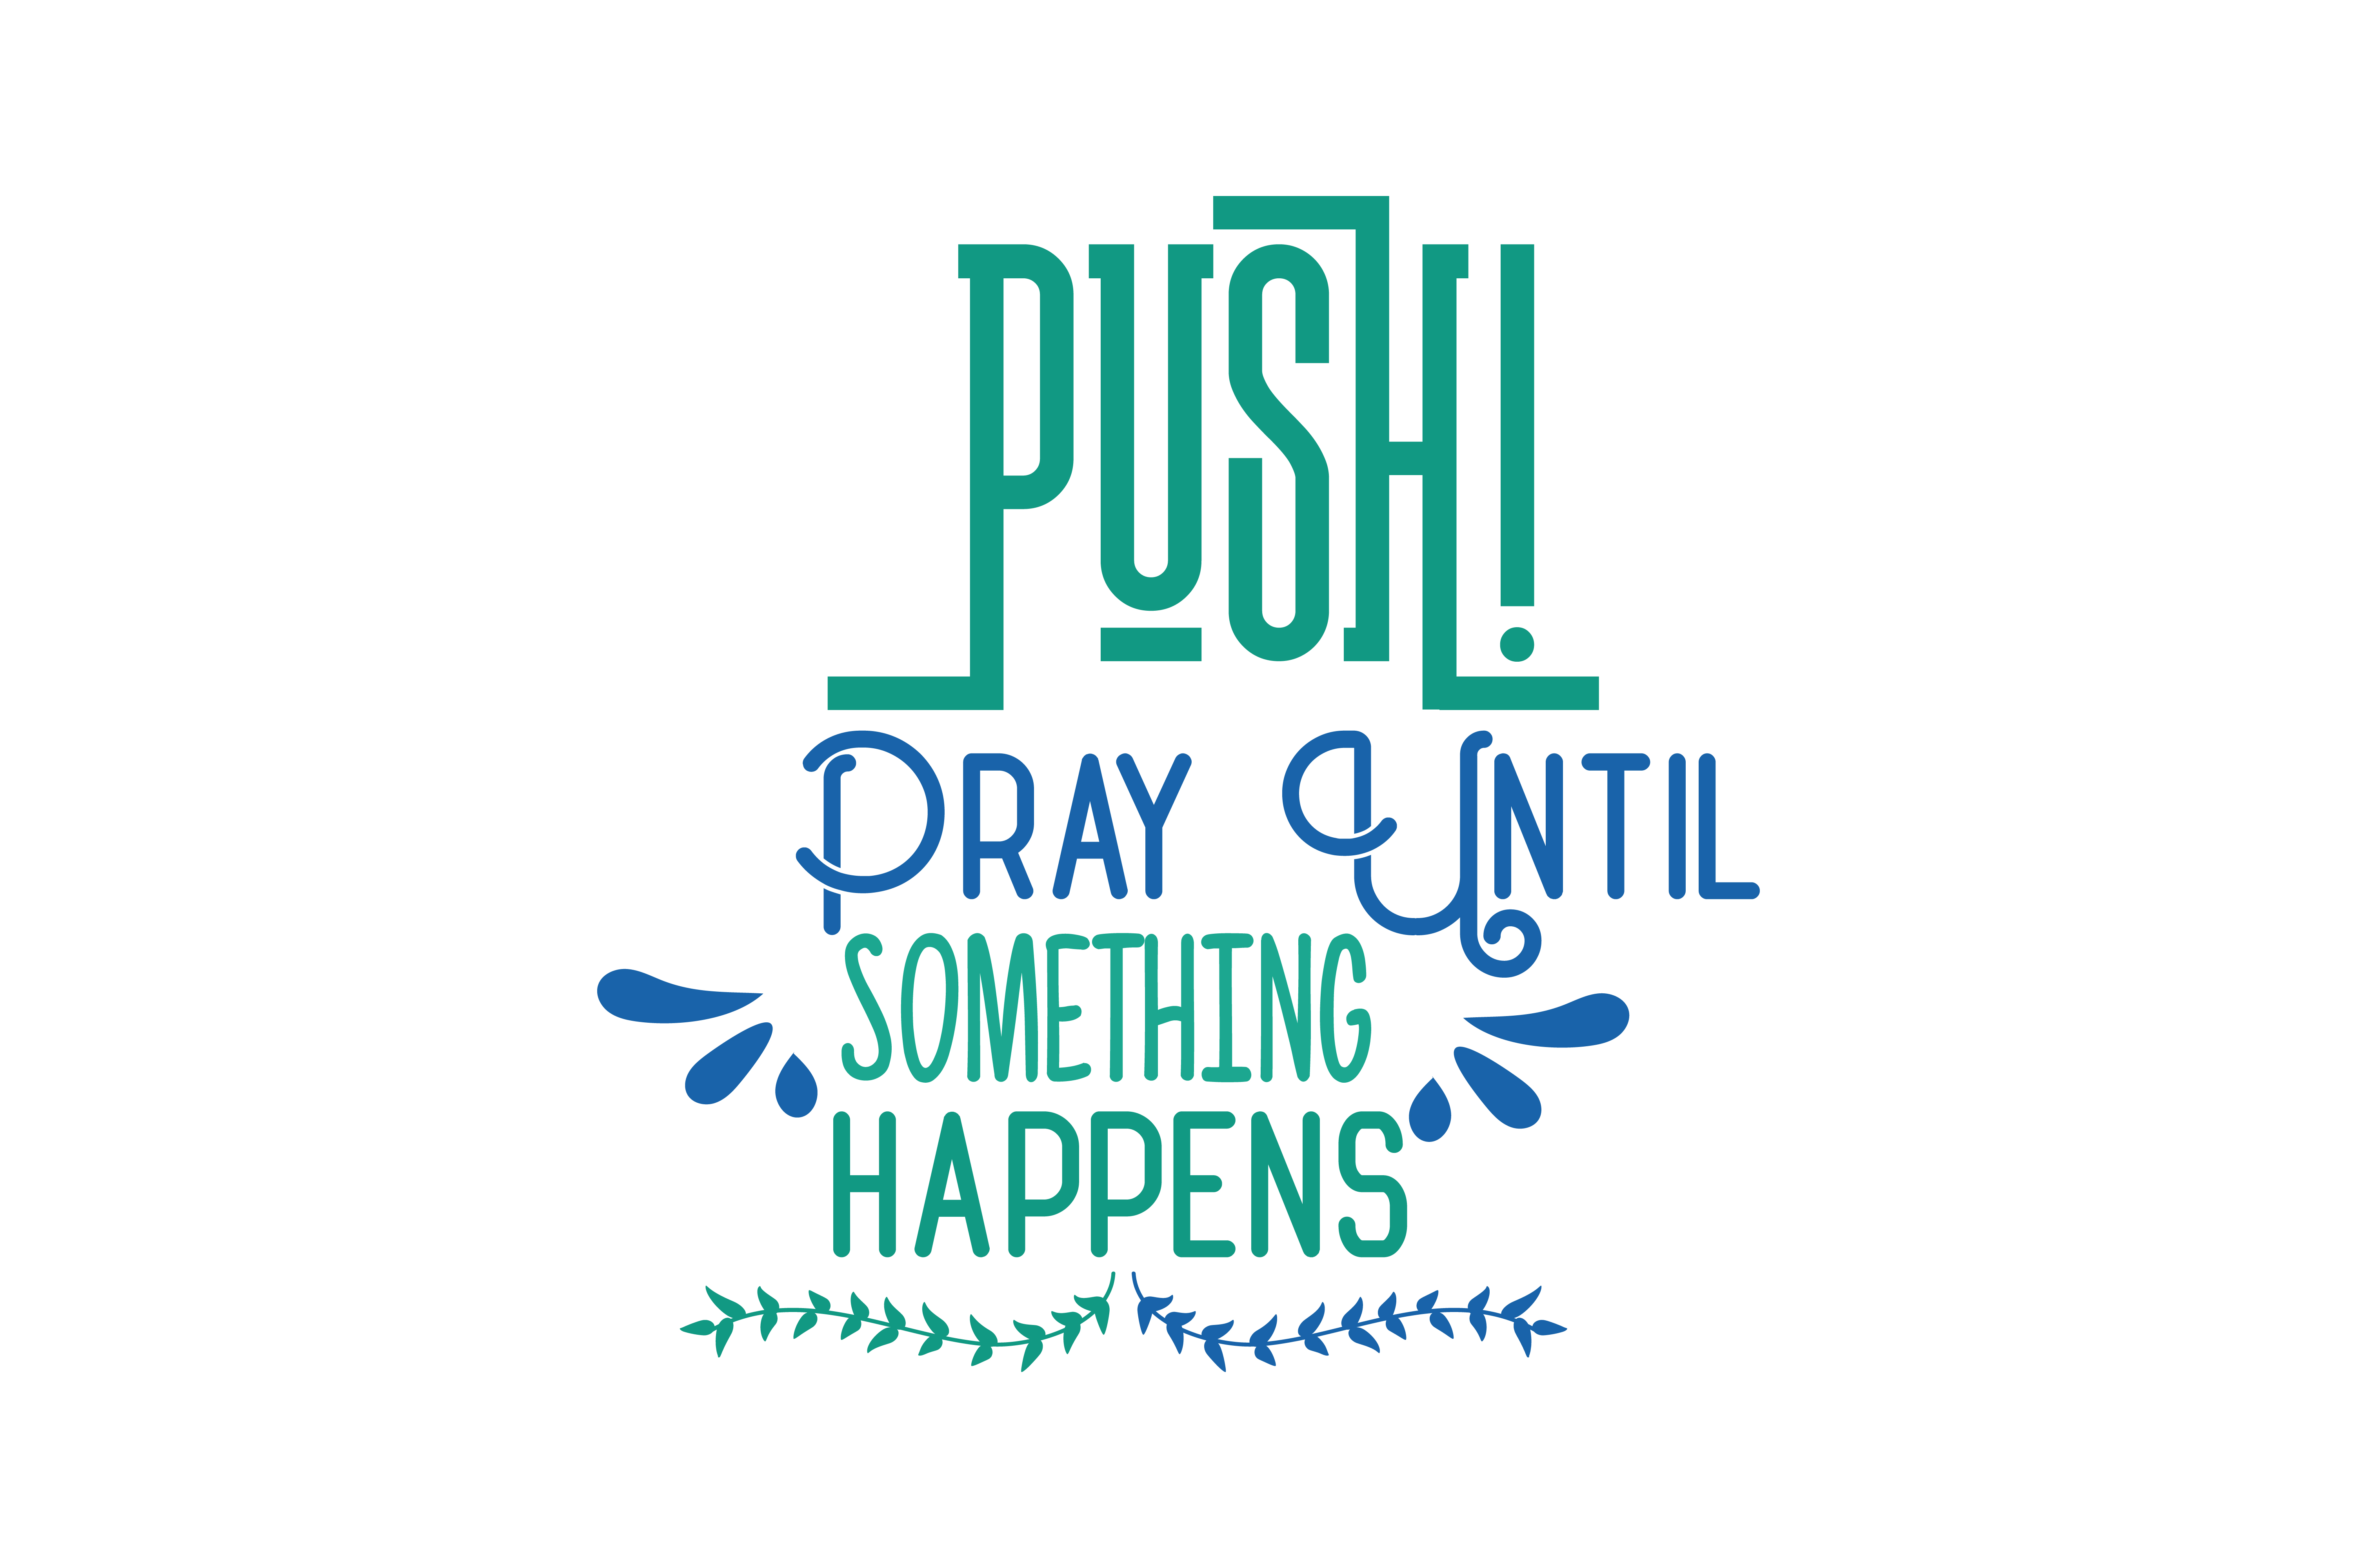 Download Free Push Pray Until Something Happens Quote Svg Cut Graphic By Thelucky Creative Fabrica for Cricut Explore, Silhouette and other cutting machines.